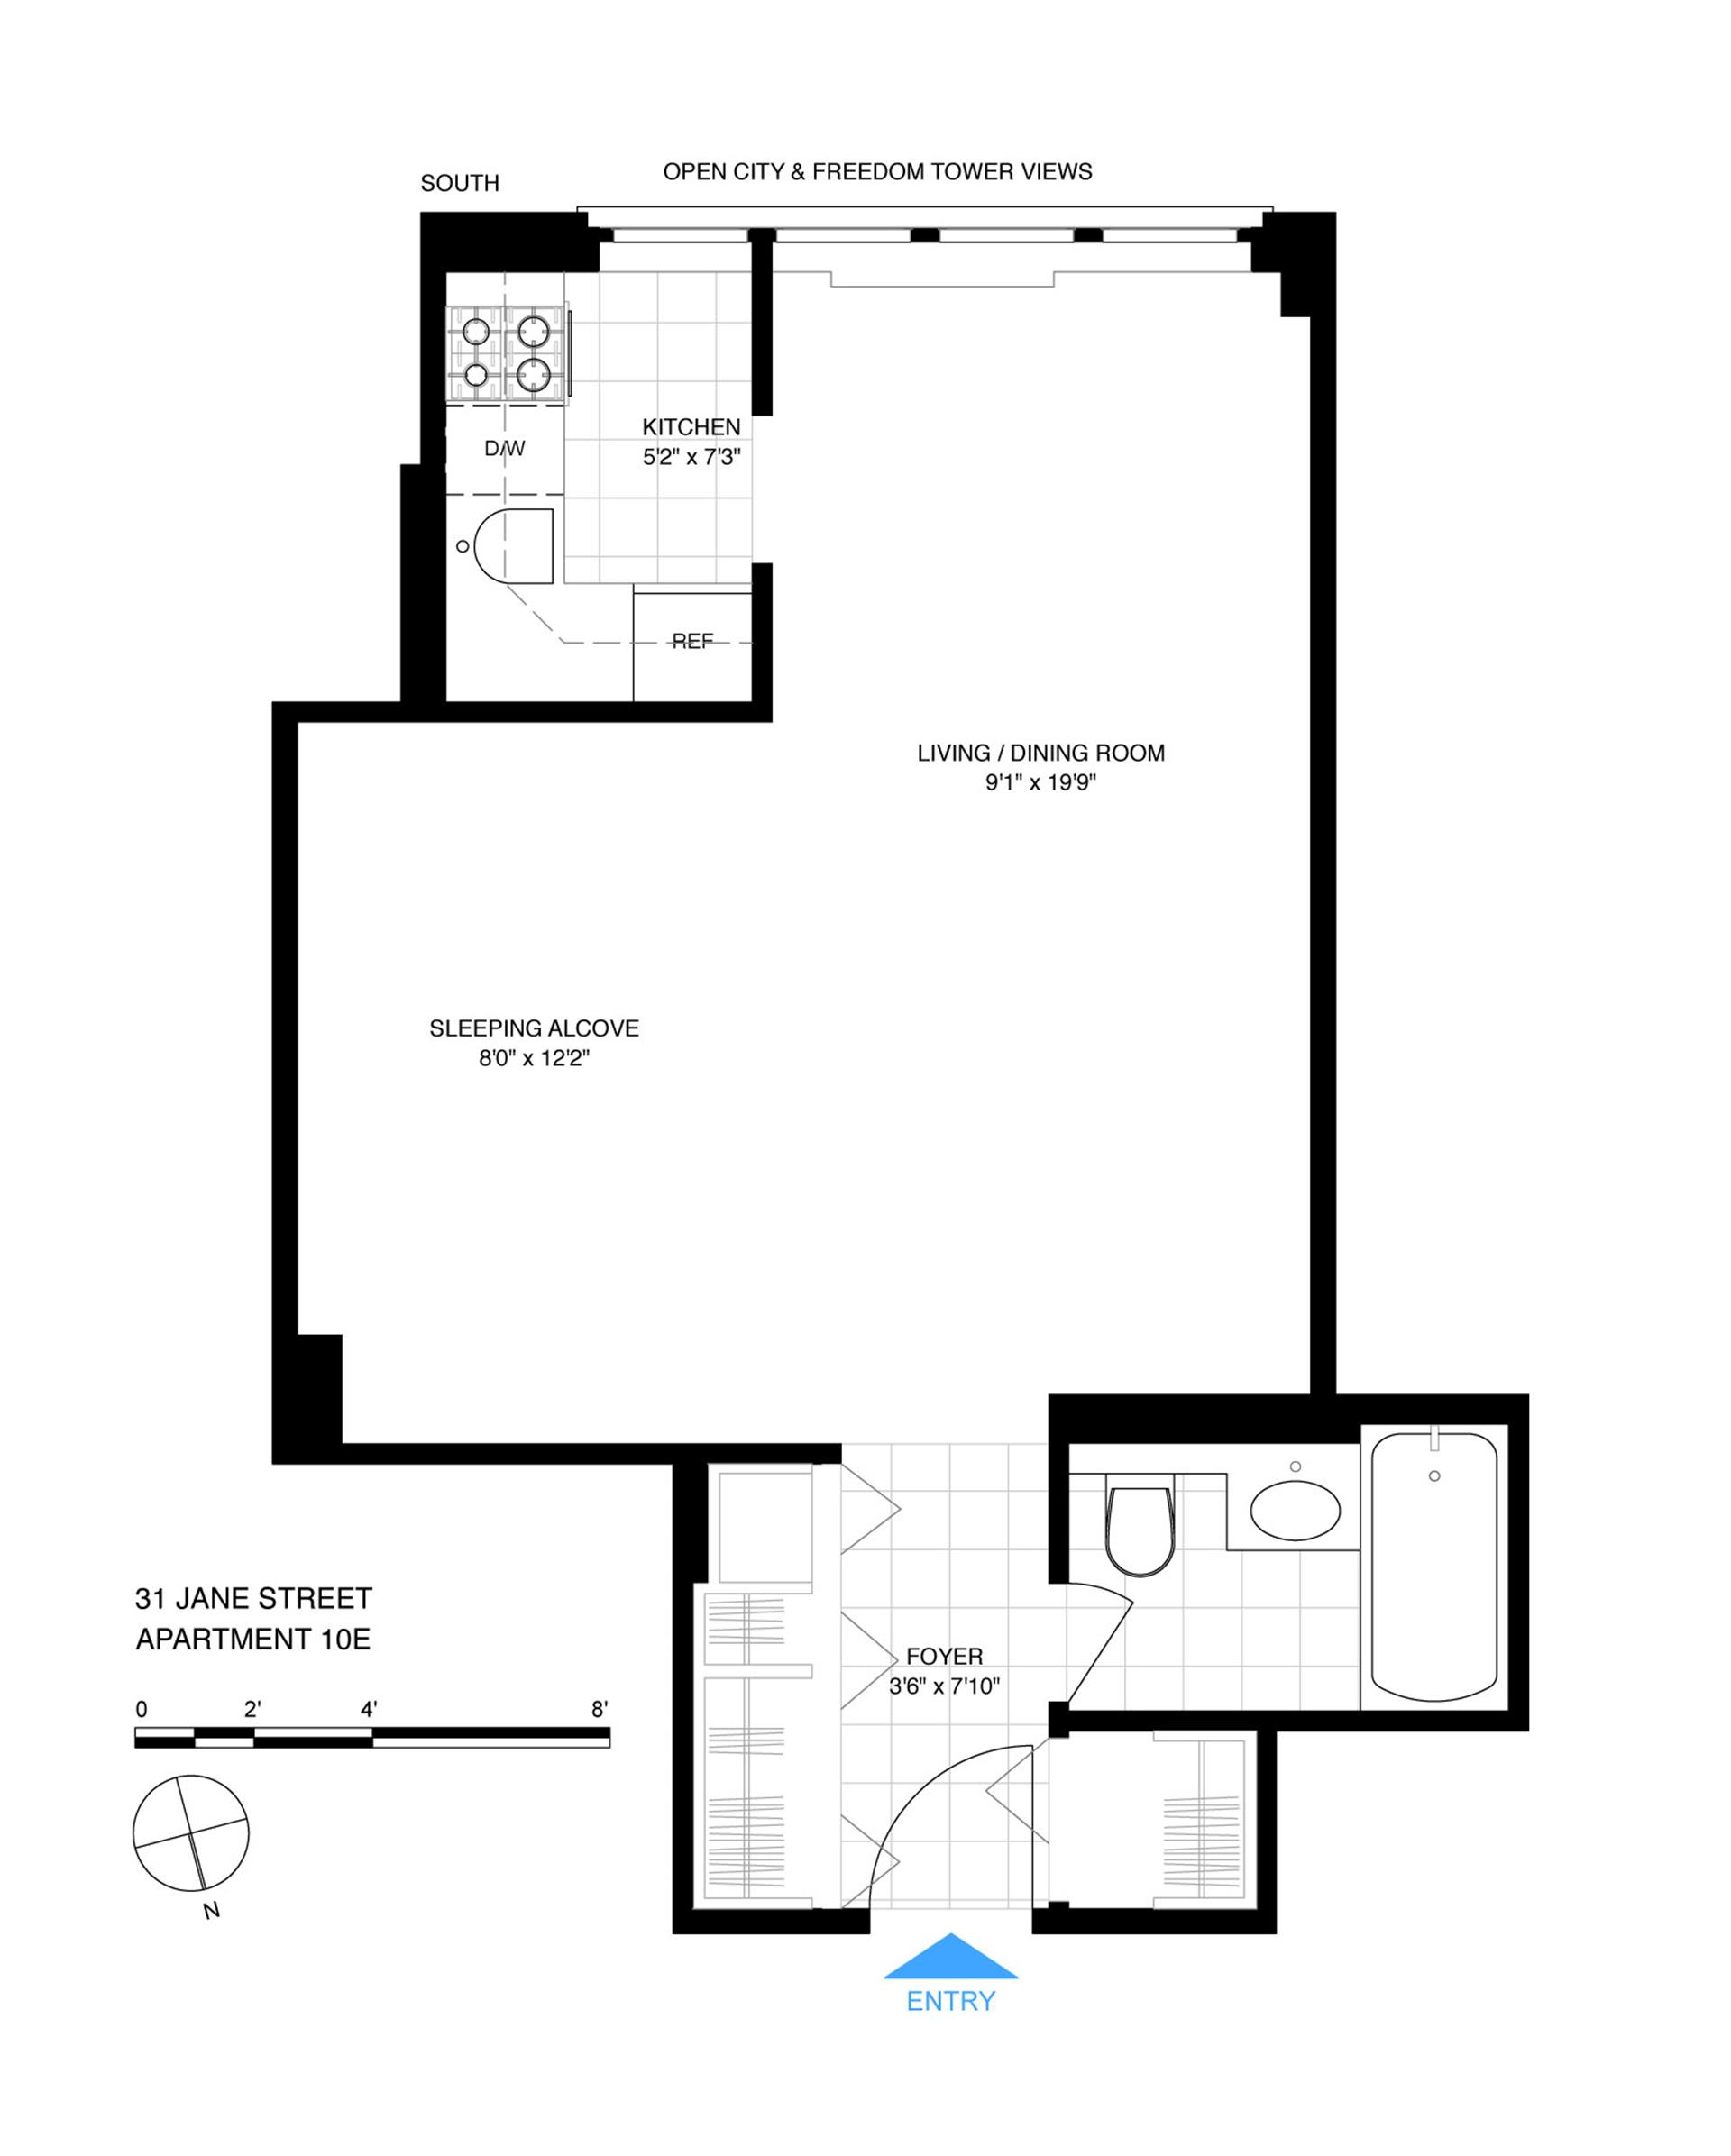 Floor plan of The Rembrandt, 31 Jane St, 10E - West Village - Meatpacking District, New York